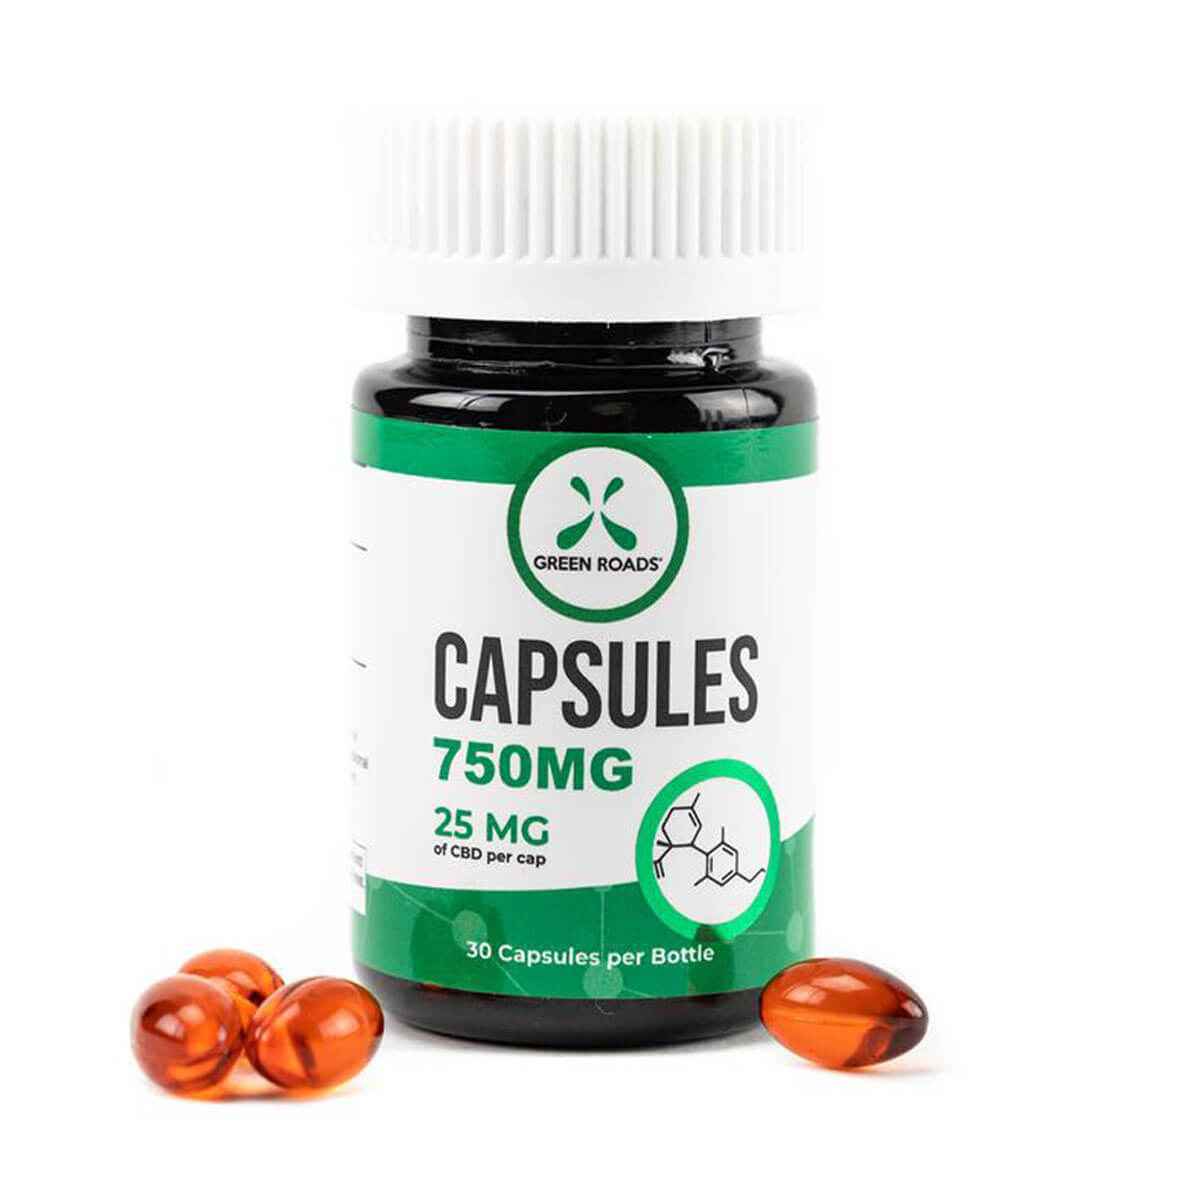 Green Roads Capsules discount code